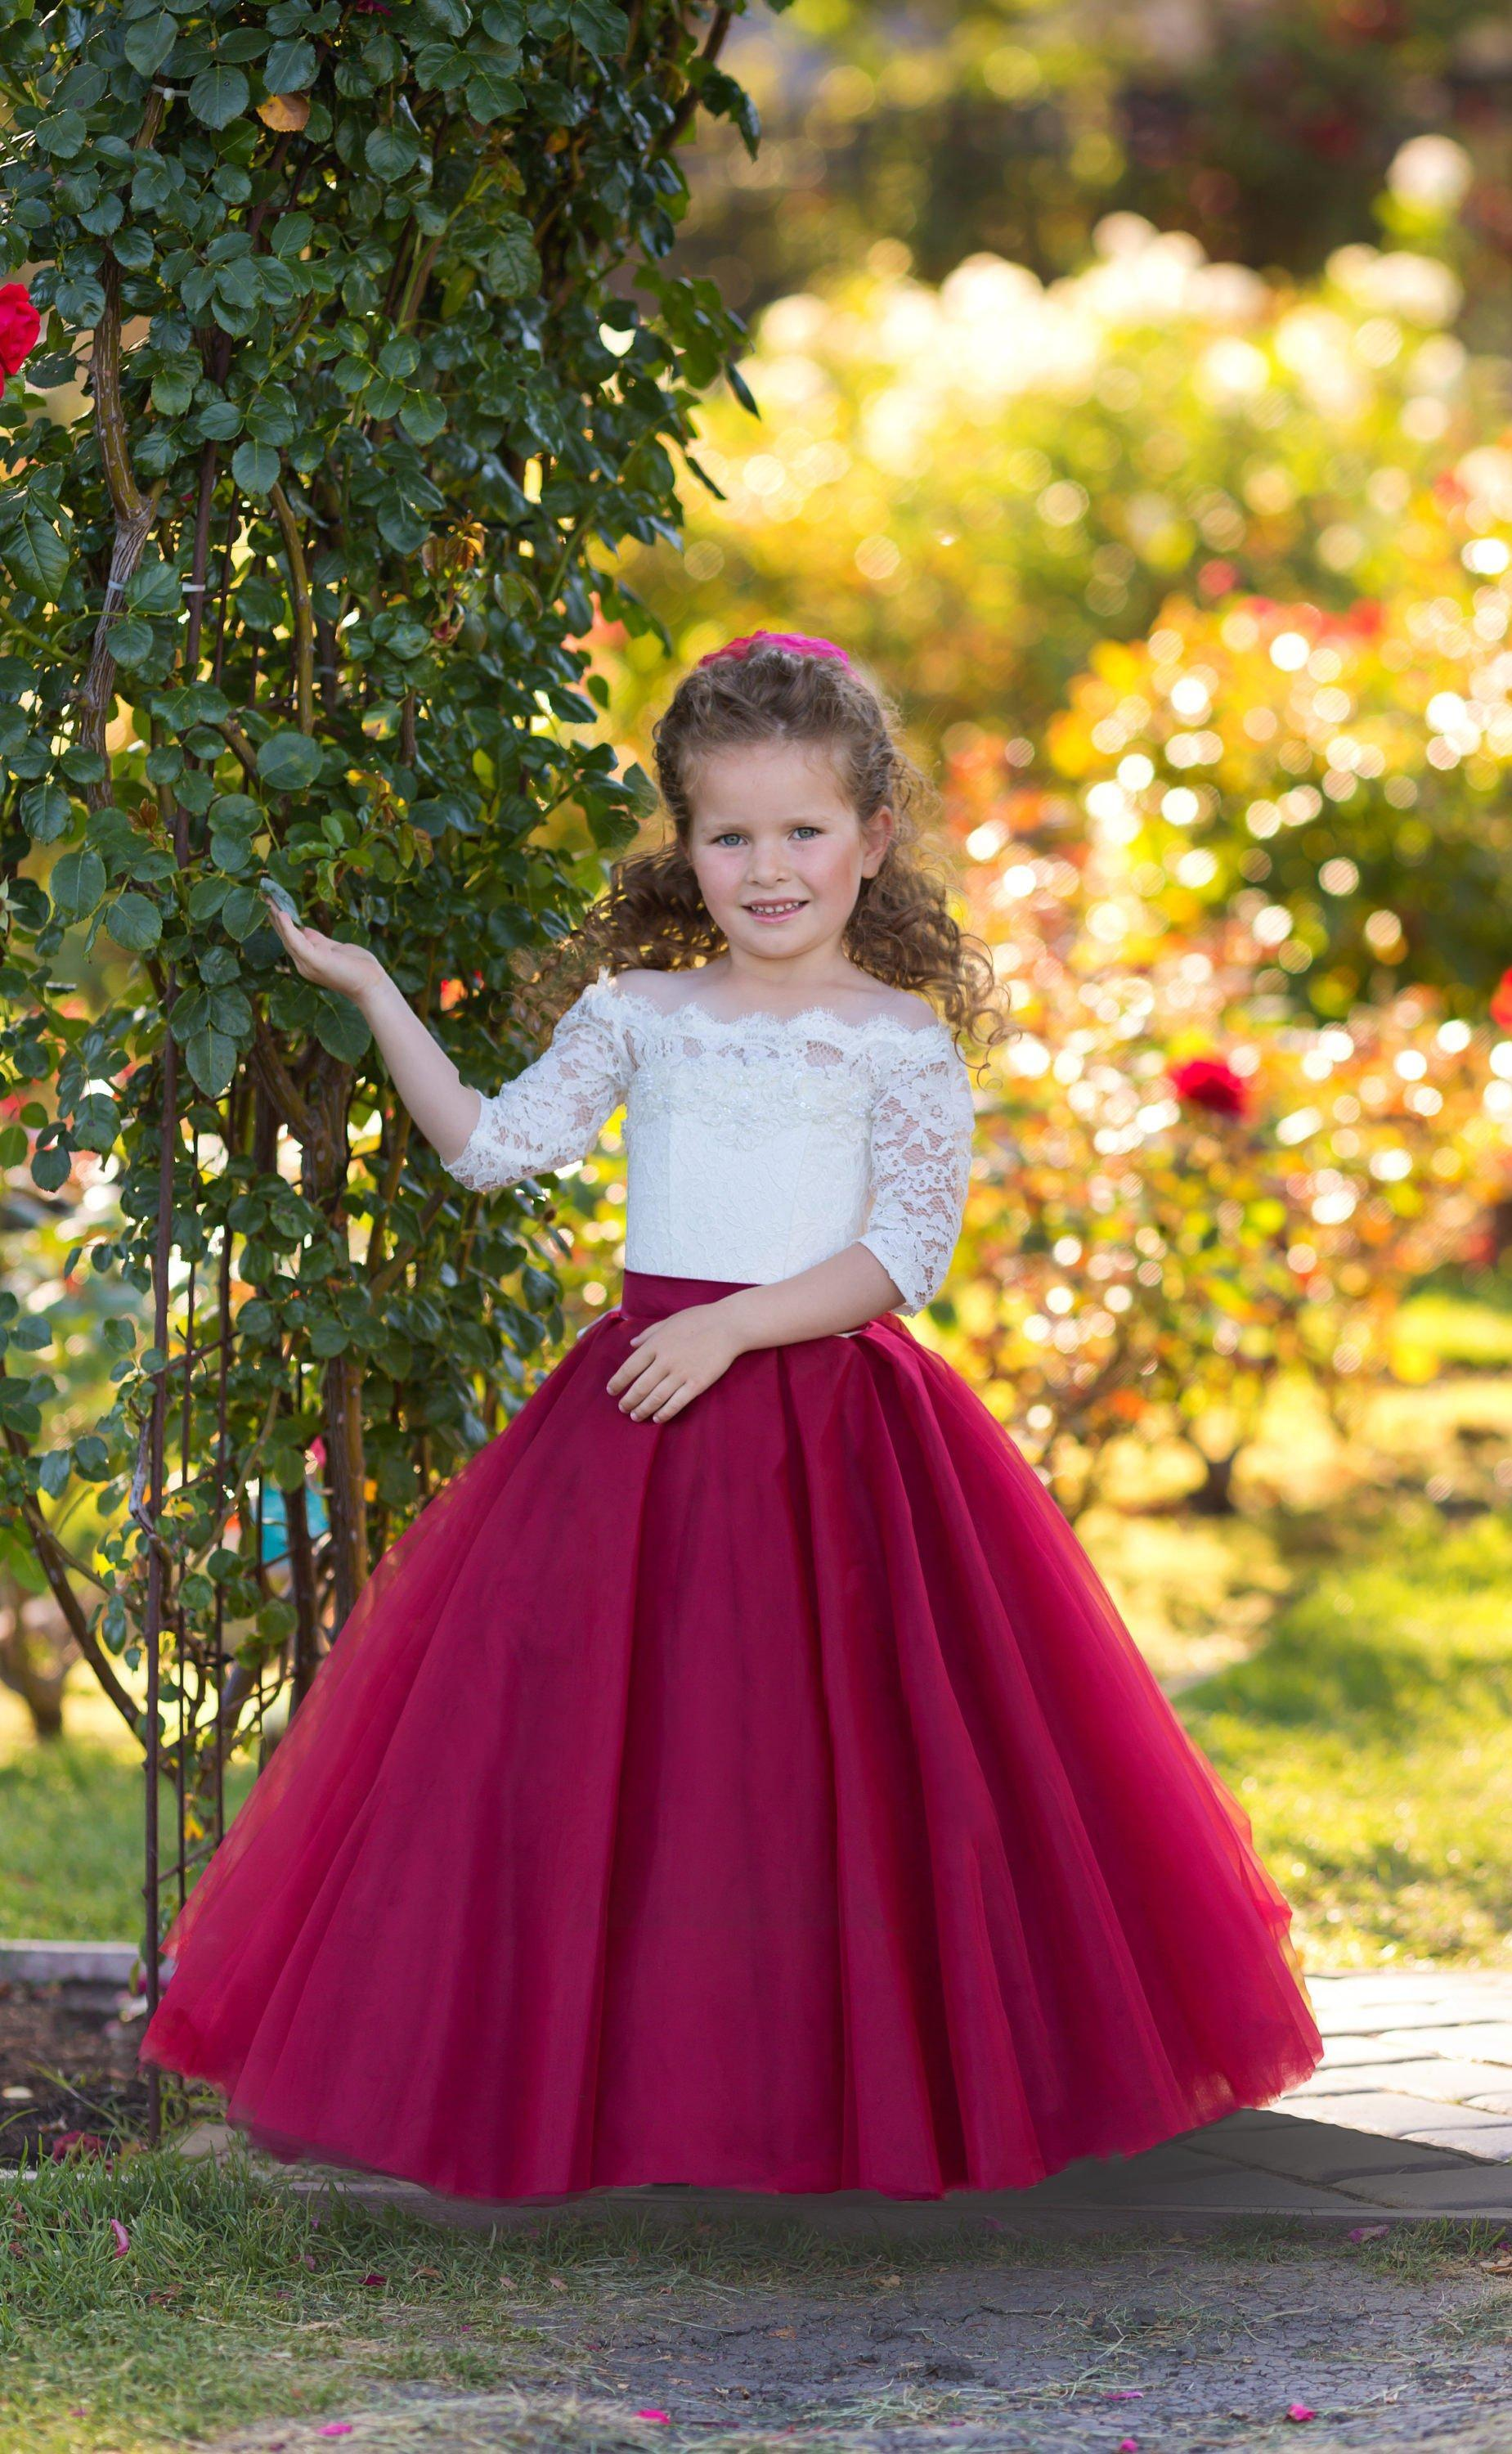 92cdbfcdcf Off Shoulders Flower Girl Dress Burgundy Wedding A Line Lace Tulle Fancy  Little Girls Party Formal Occasion Princess Dress Latest Dresses For Girls  Light ...